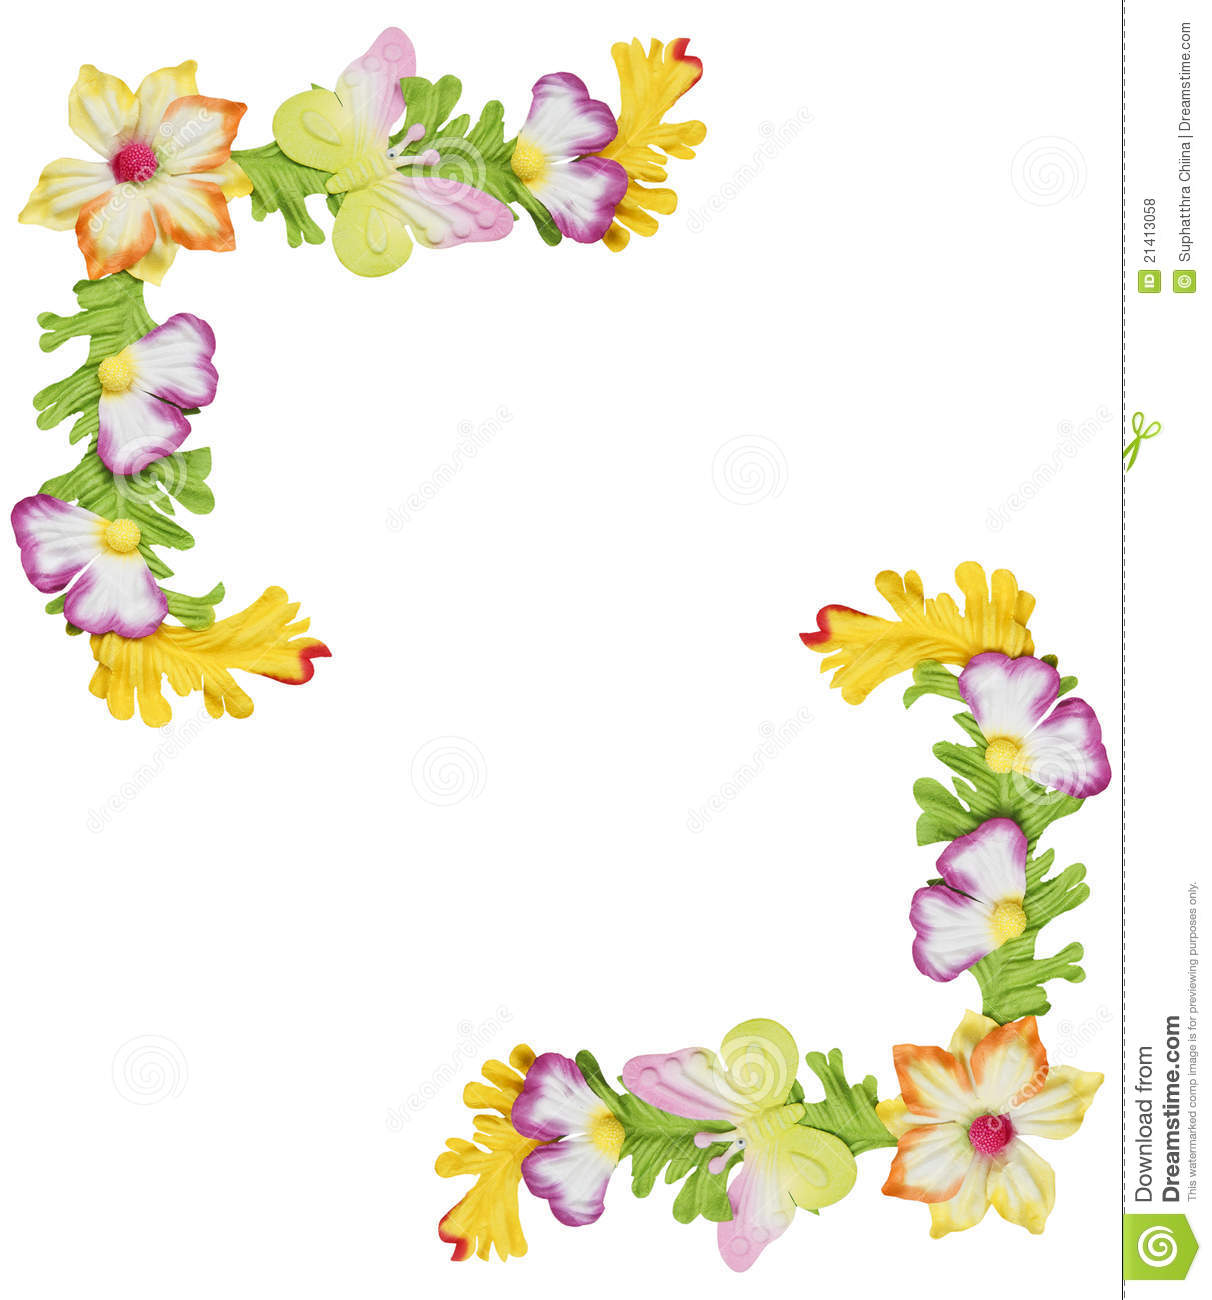 Flower Borders For Projects On Paper | www.pixshark.com ...